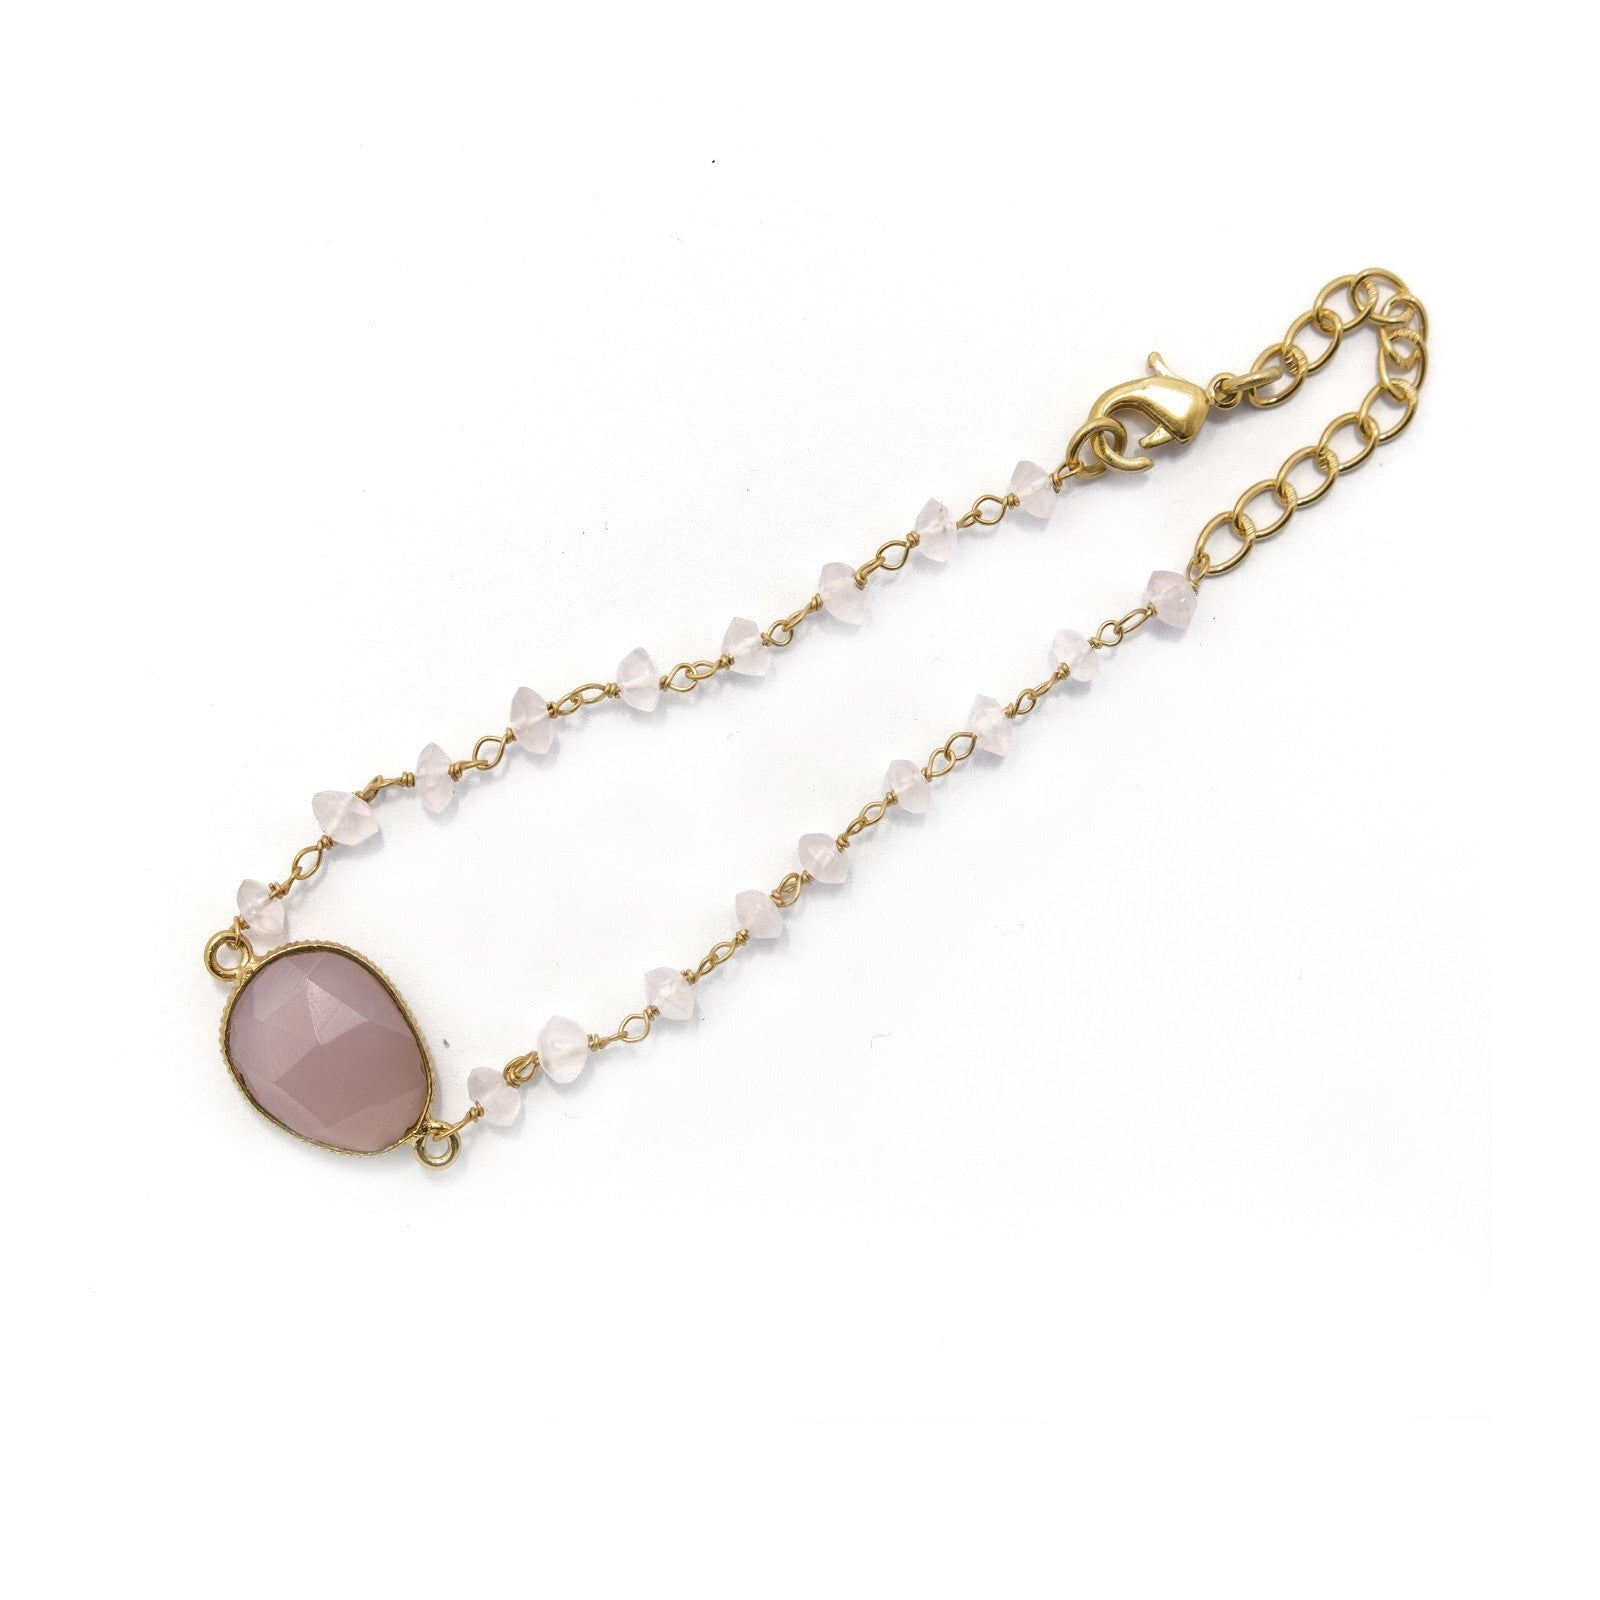 Tuesday Bracelet  - Rose Chalcedony handcrafted gold plated Katy Valentine - Shop with Sparkle & The Sinner